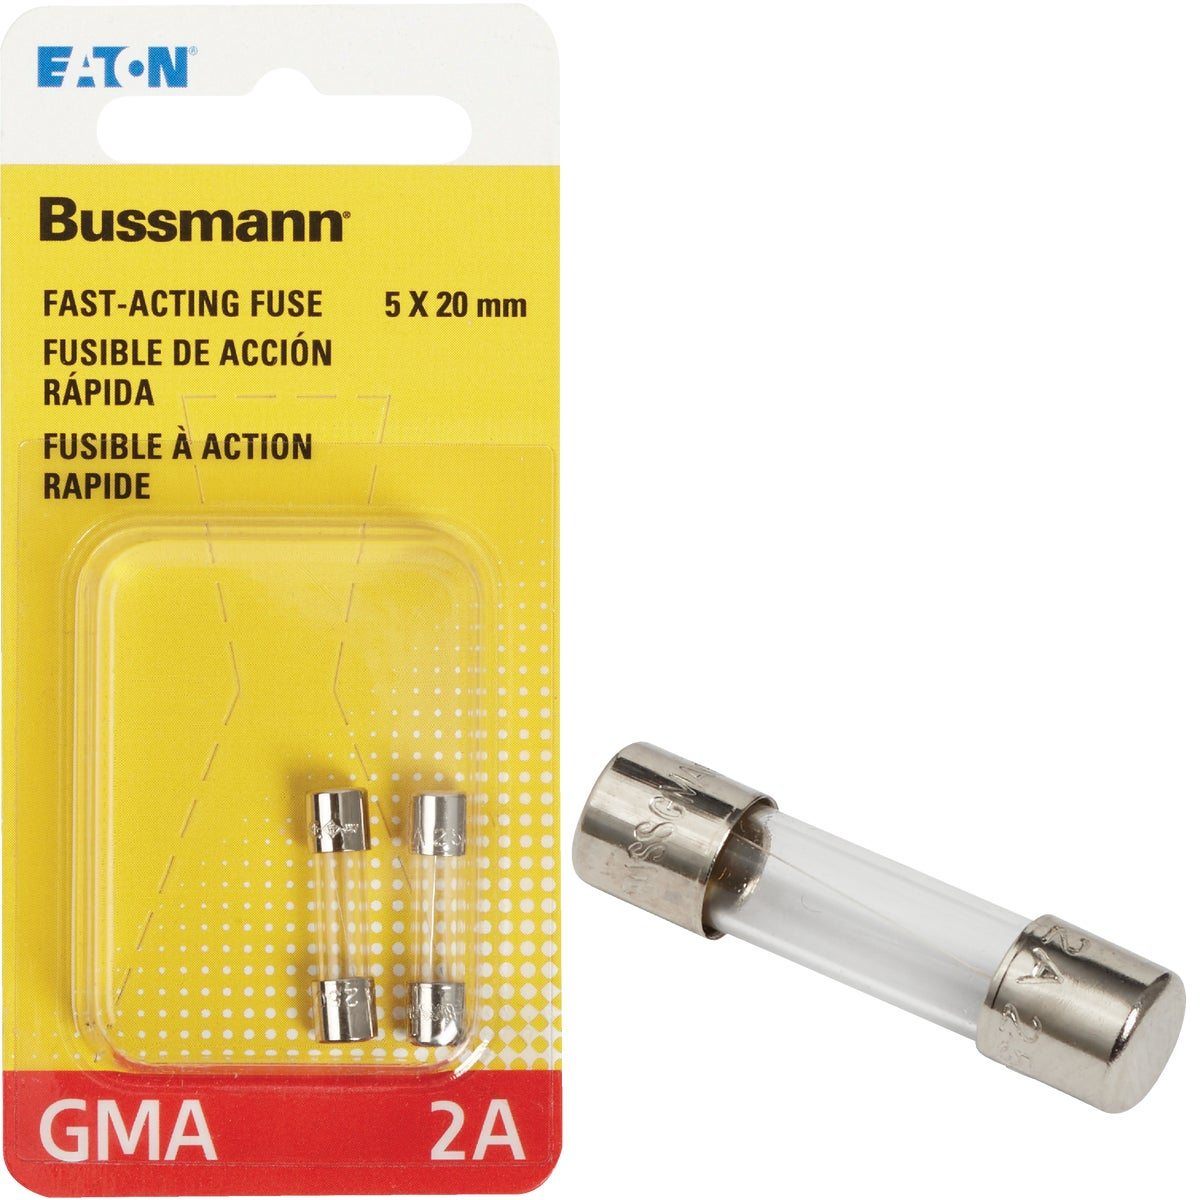 2A FAST ACTING FUSE